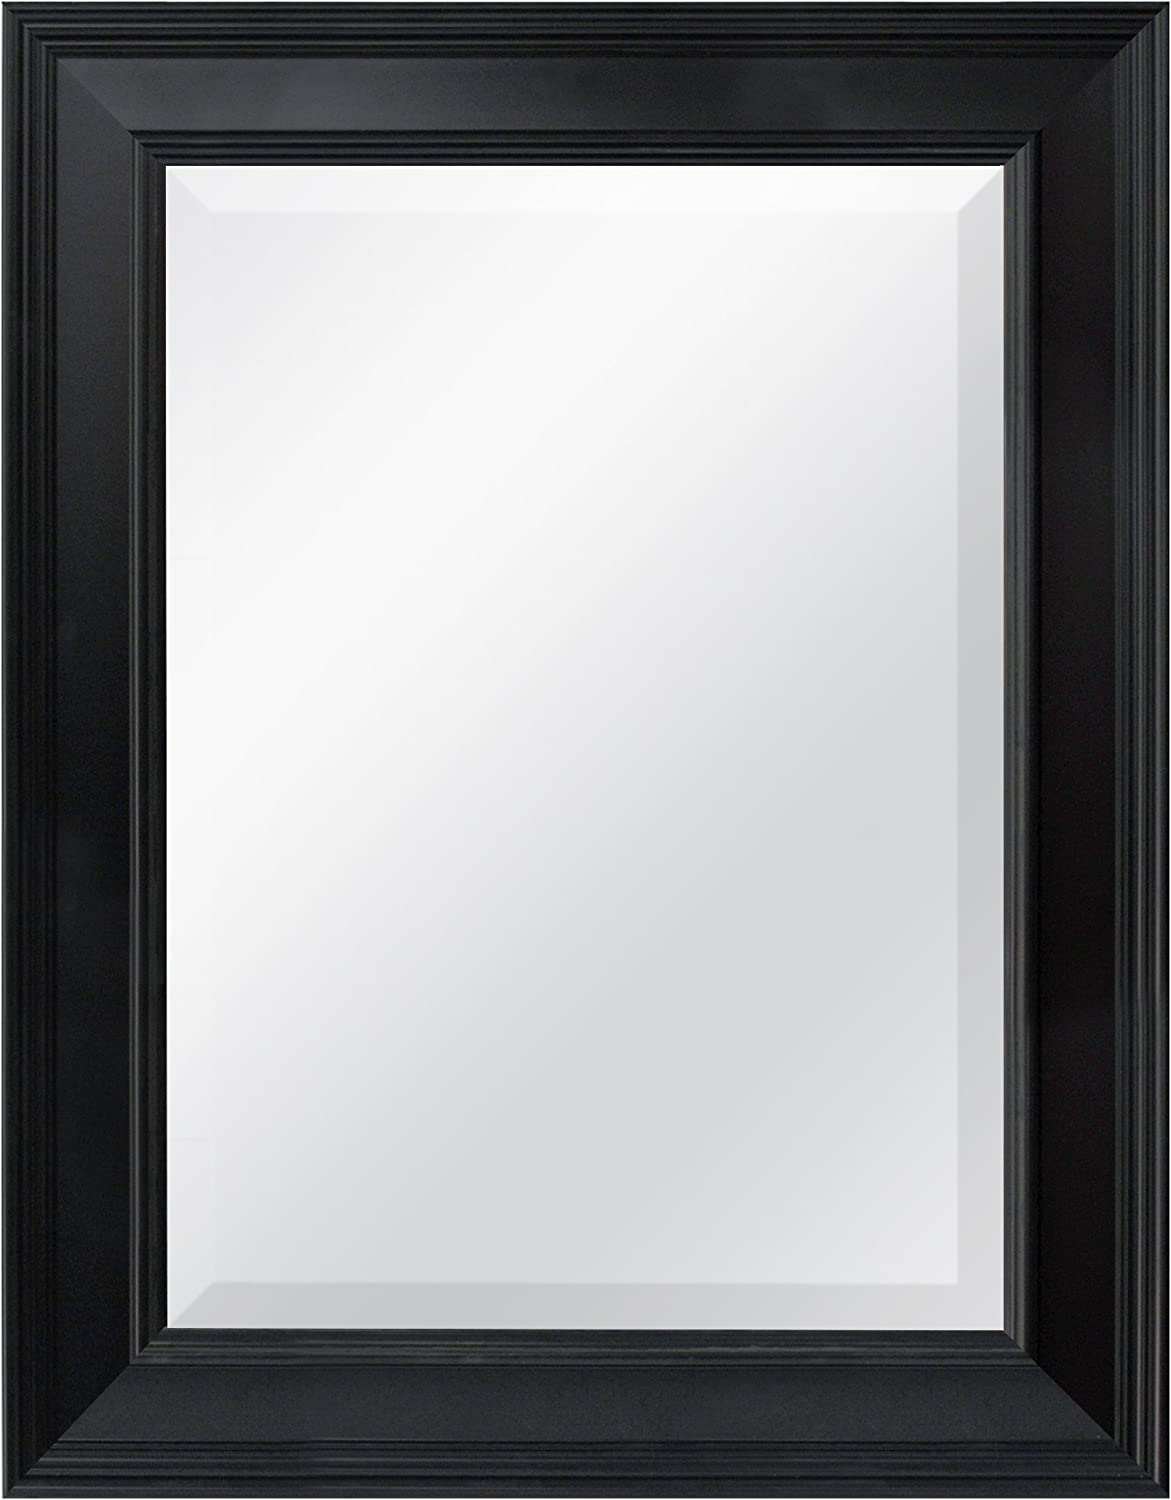 MCS Black Grooved Beveled Rectangular Wall Mirror, 21-Inch by 27-Inch